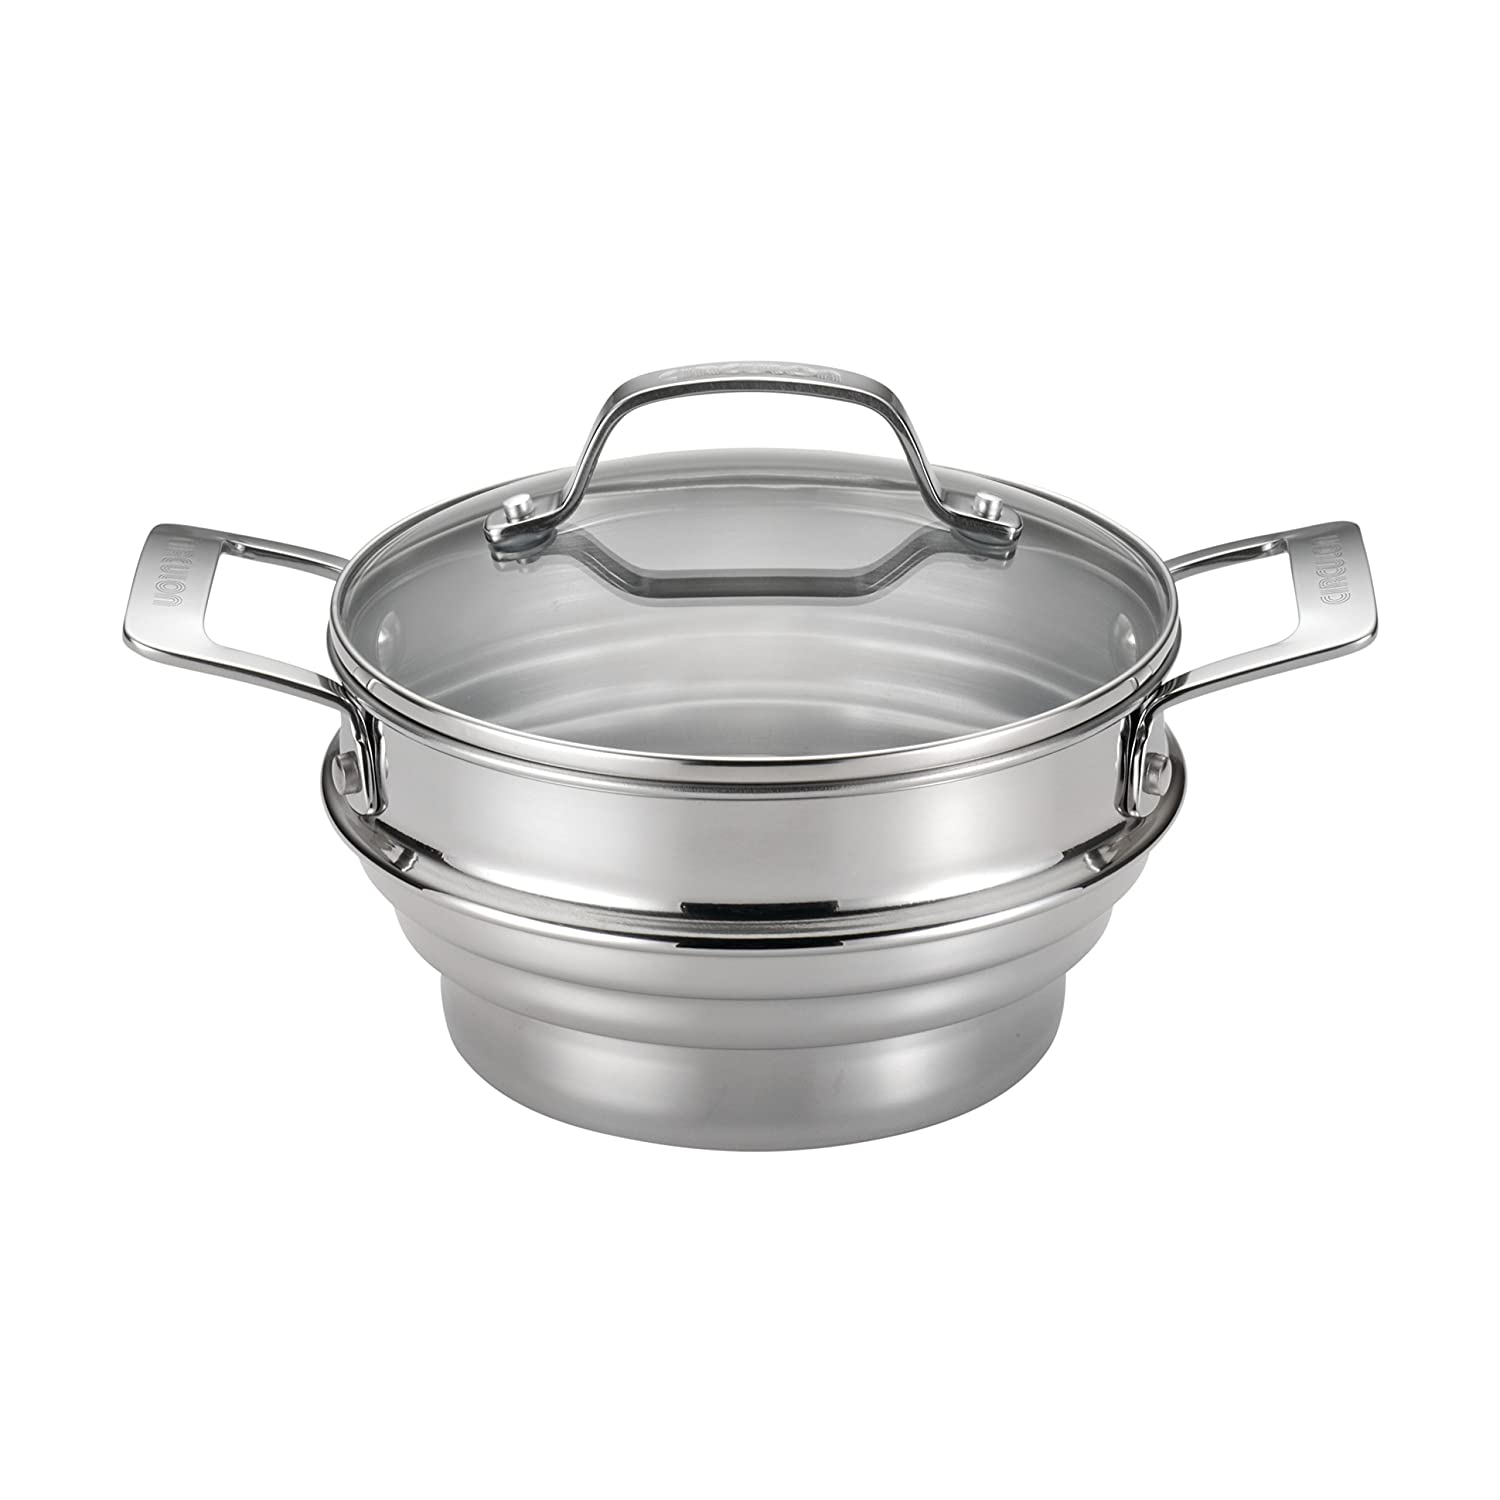 Circulon Stainless Steel Universal Steamer with Lid Meyer 70135